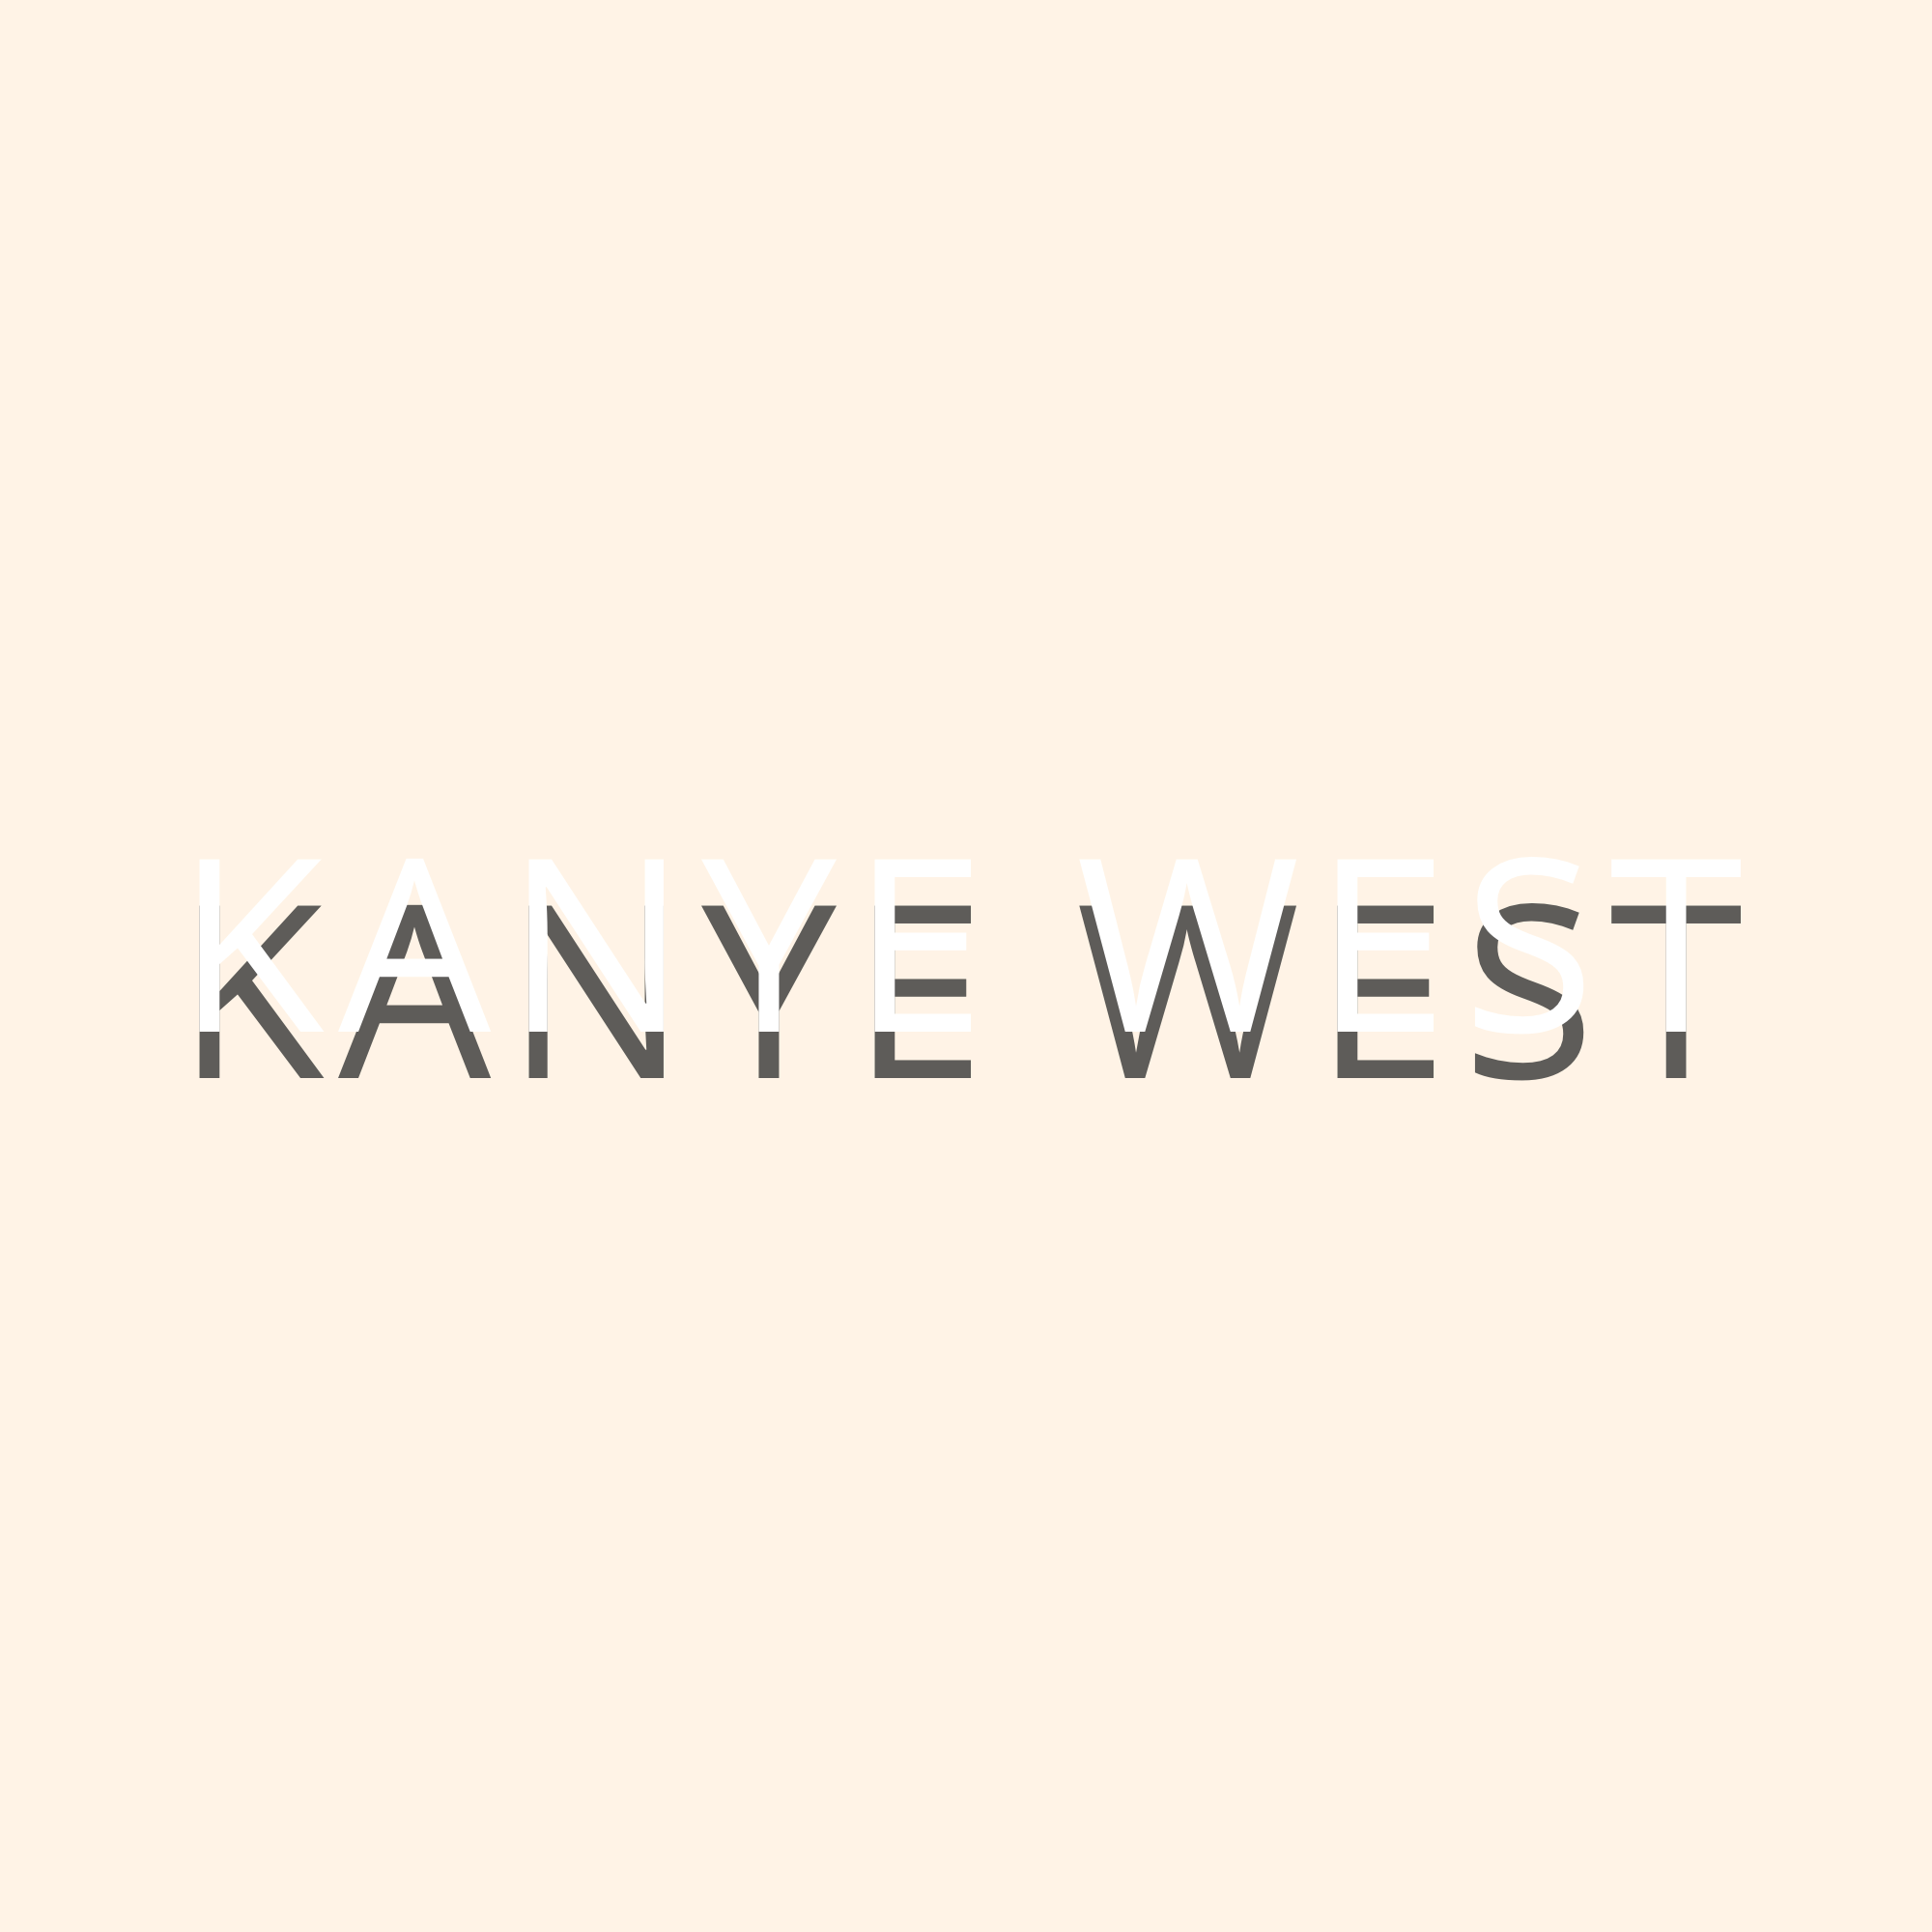 Kanye west logo png. Outland visual test copyxpng